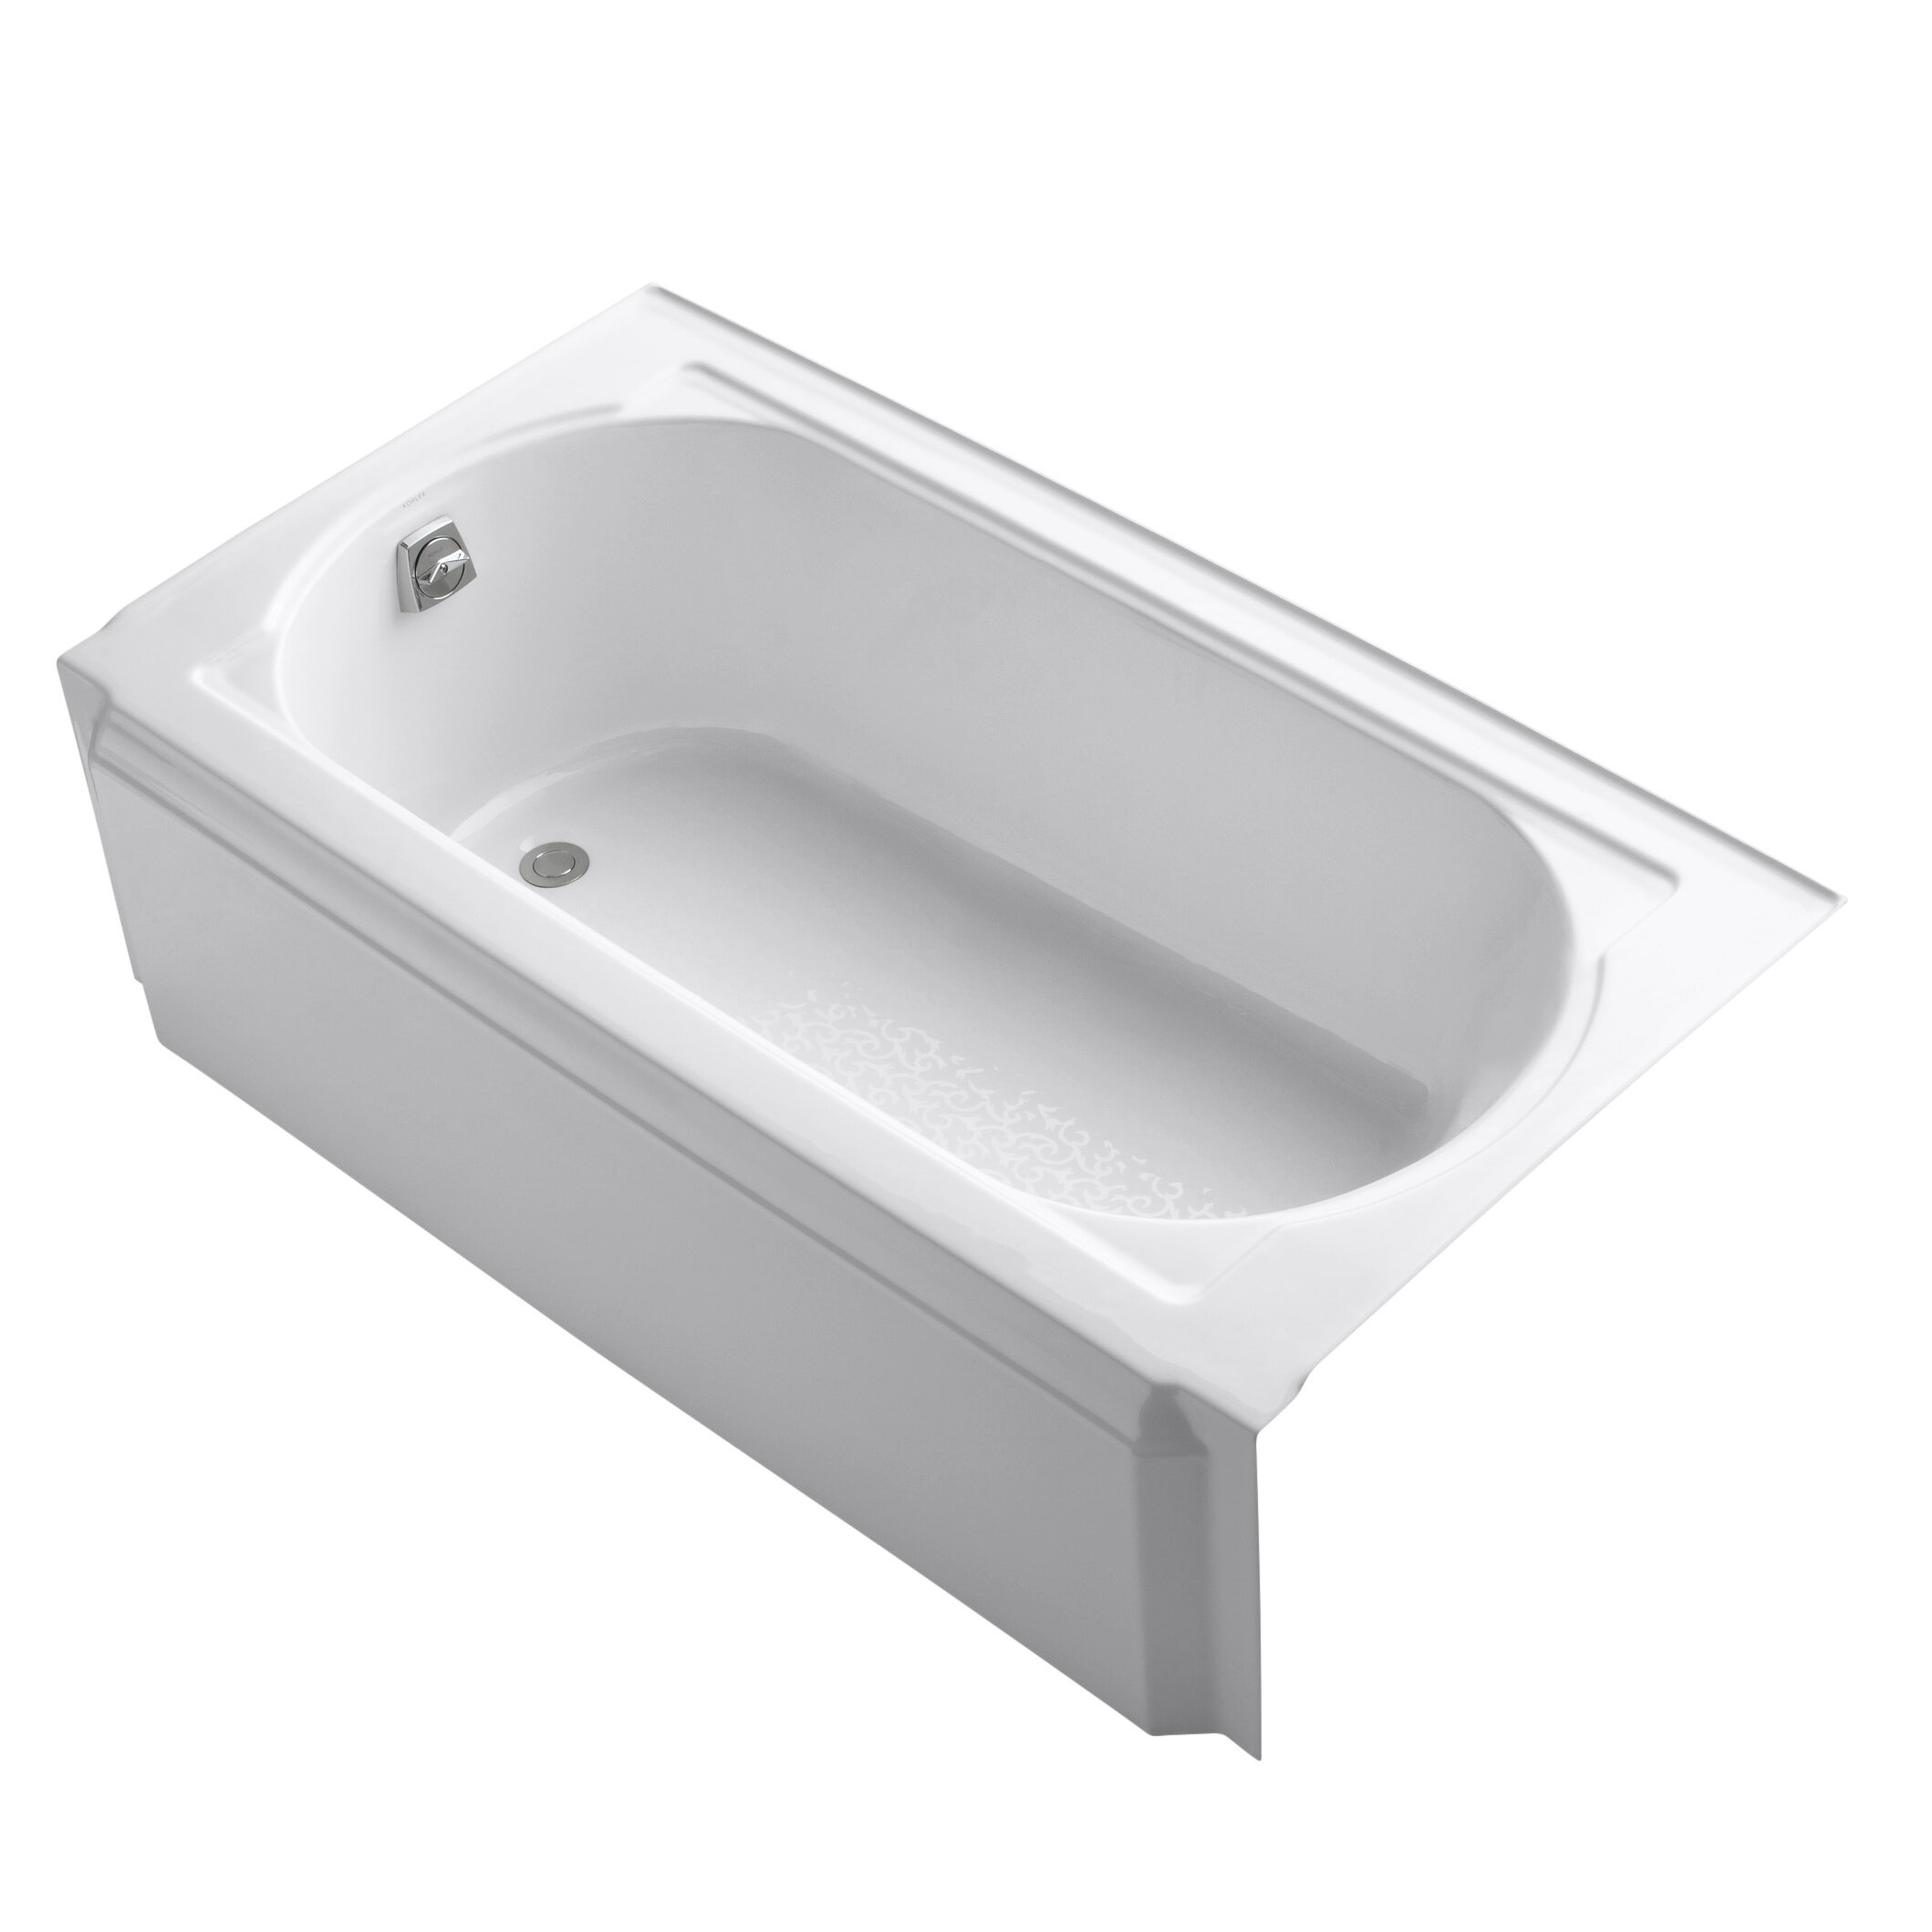 villager small dimensions metal tub pilates standalone bathtubs freestanding cast kohler bathtub whirlpool lightweight deep jets soaking tubs bath with enclosures bathroom iron